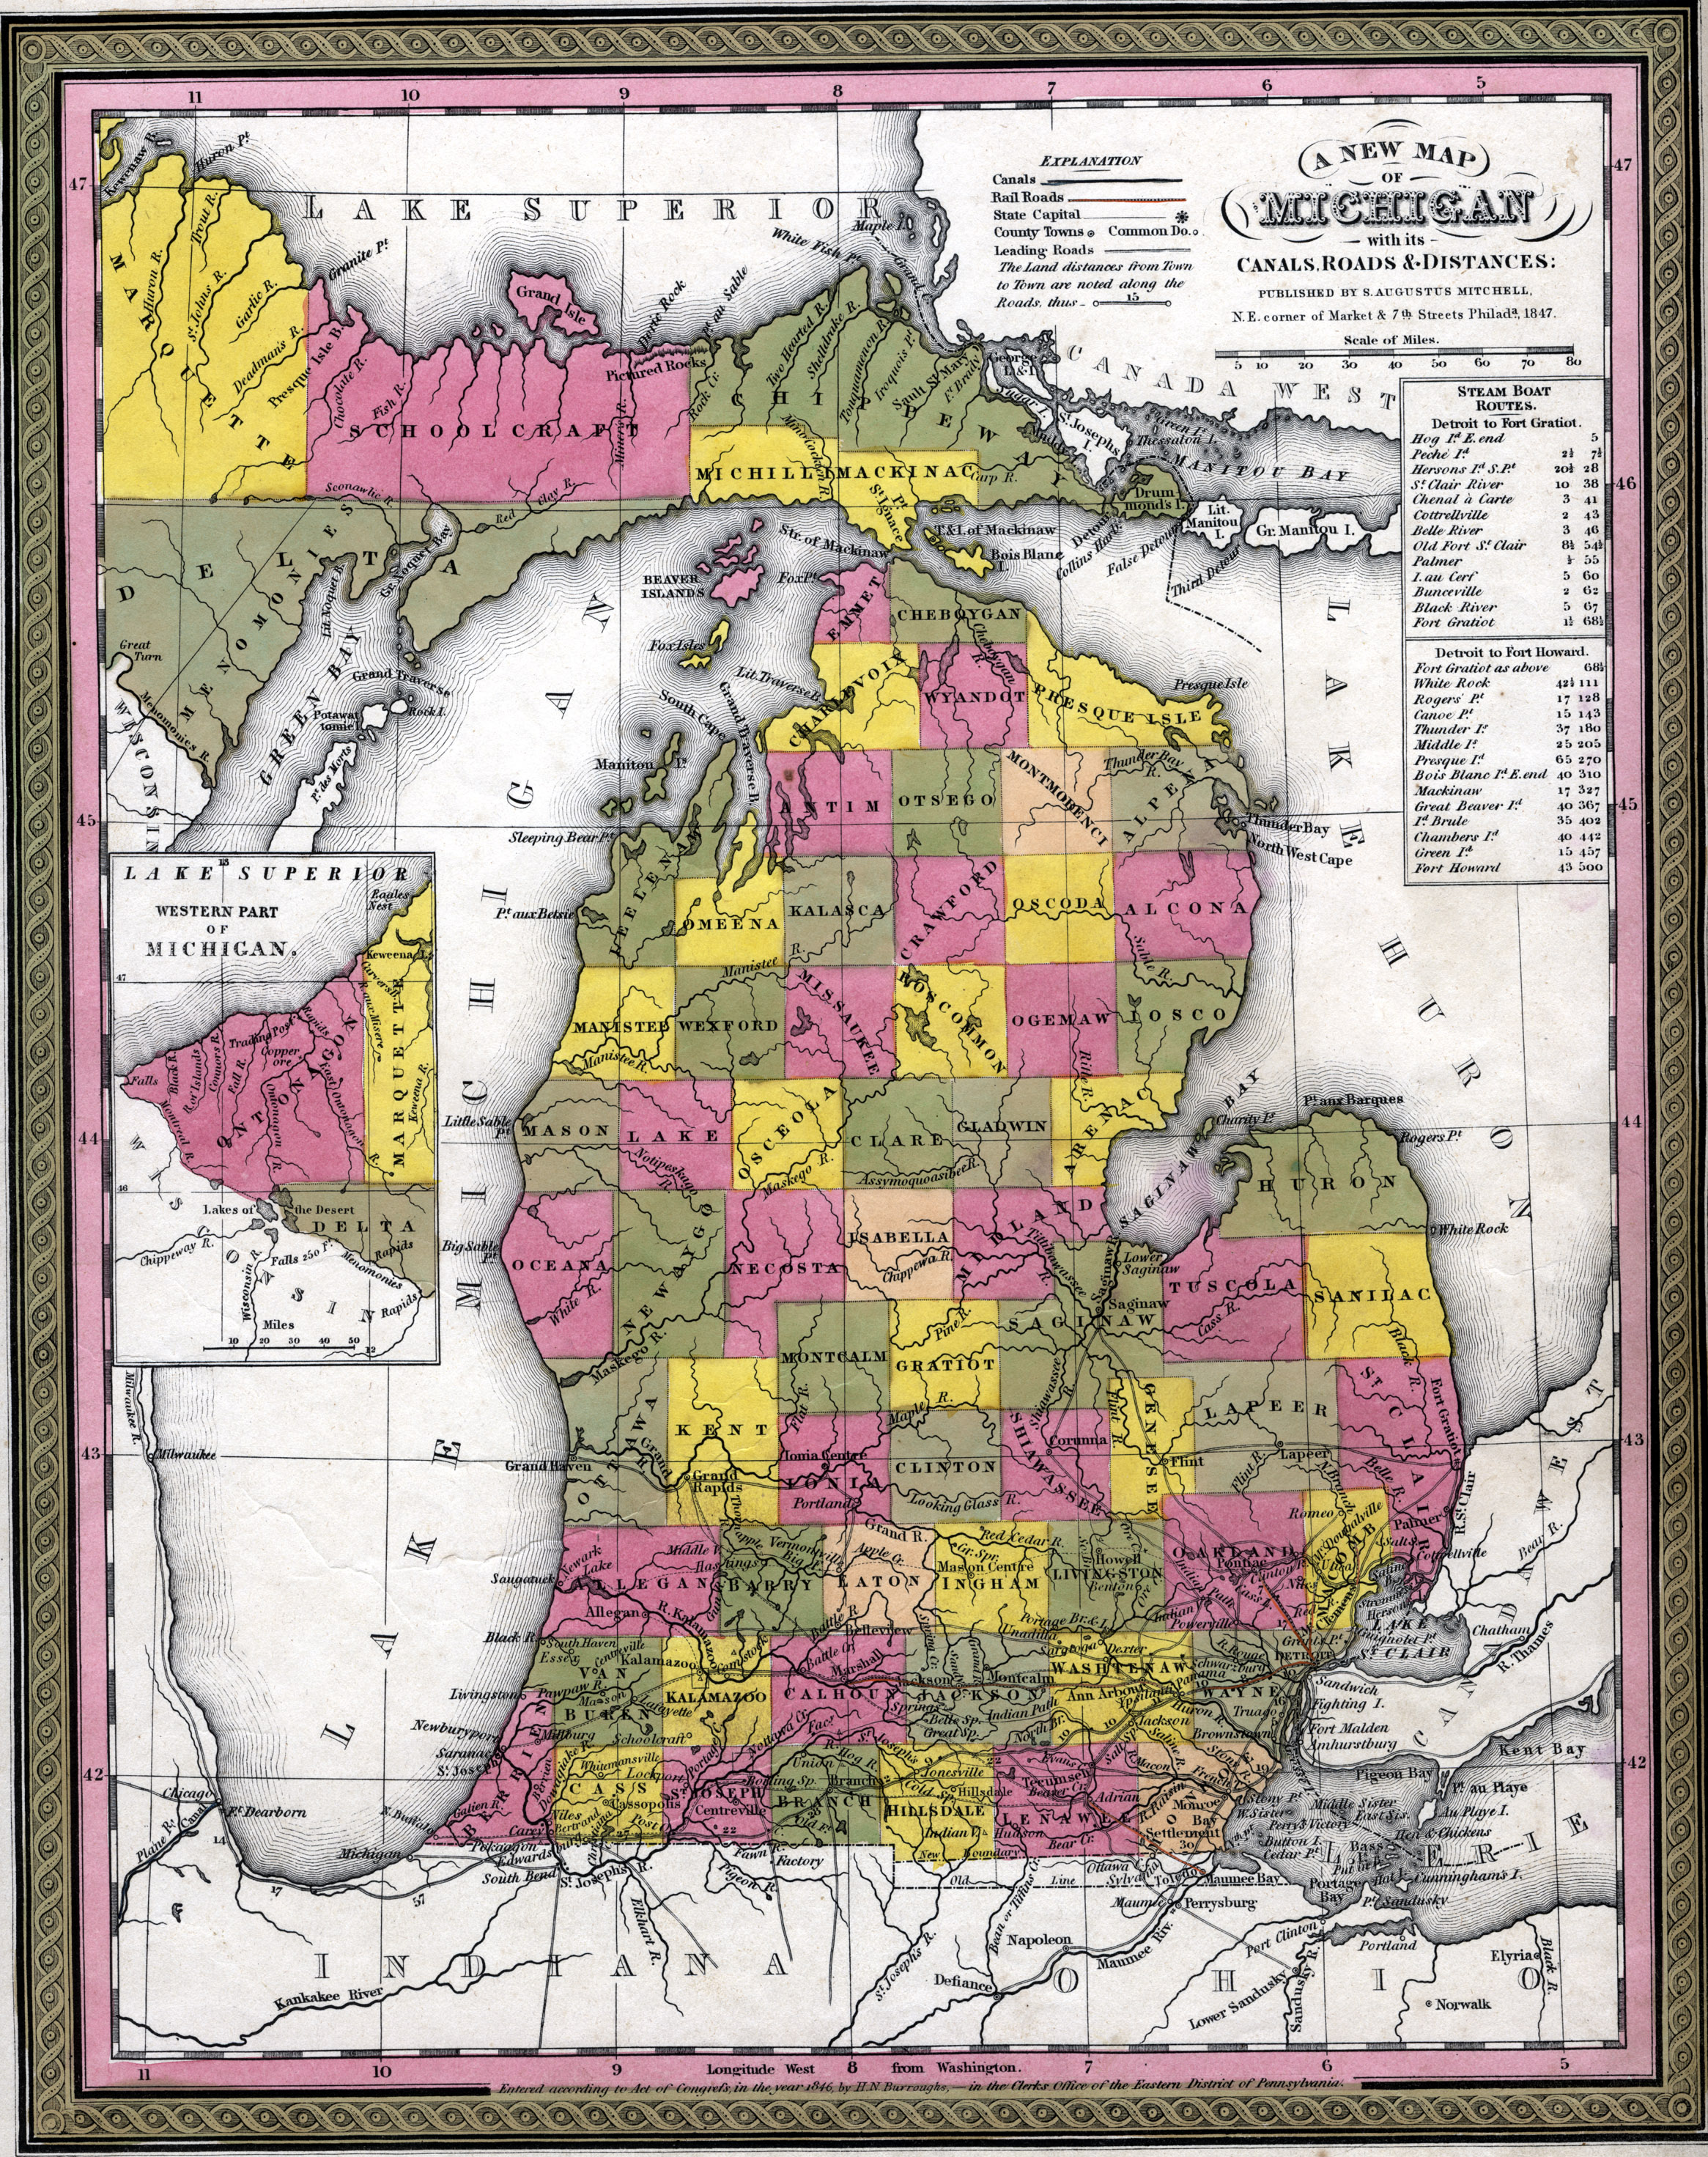 1846michiganmap.jpg